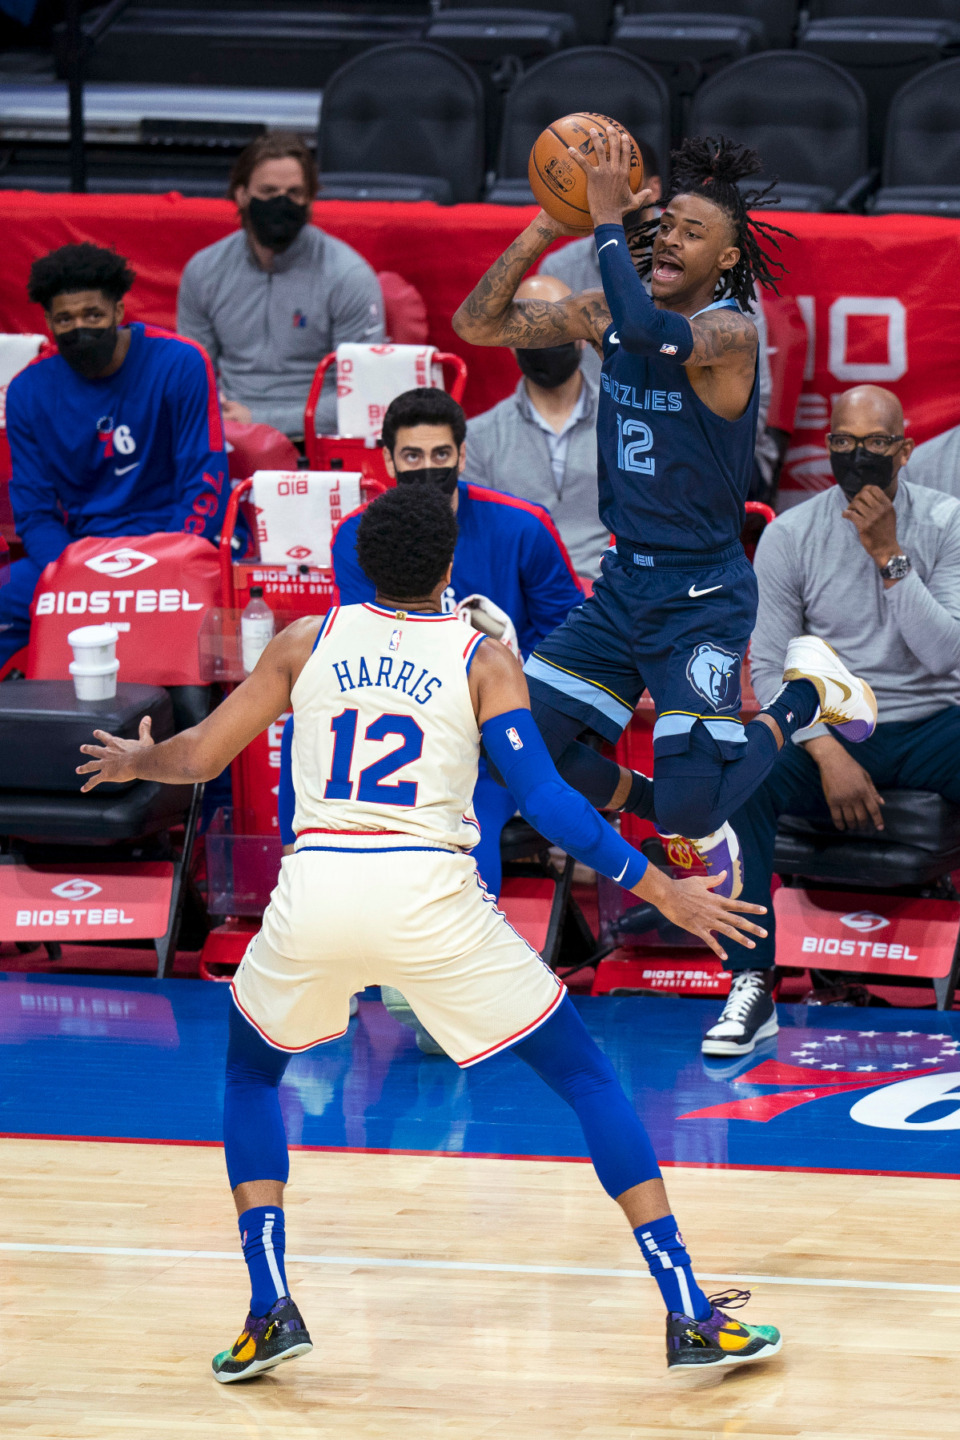 <strong>Memphis Grizzlies' Ja Morant shoots a 3-pointer with Philadelphia 76ers' Tobias Harris, left, defending during the first half of an NBA basketball game Sunday, April 4, 2021, in Philadelphia.</strong> (AP Photo/Chris Szagola)